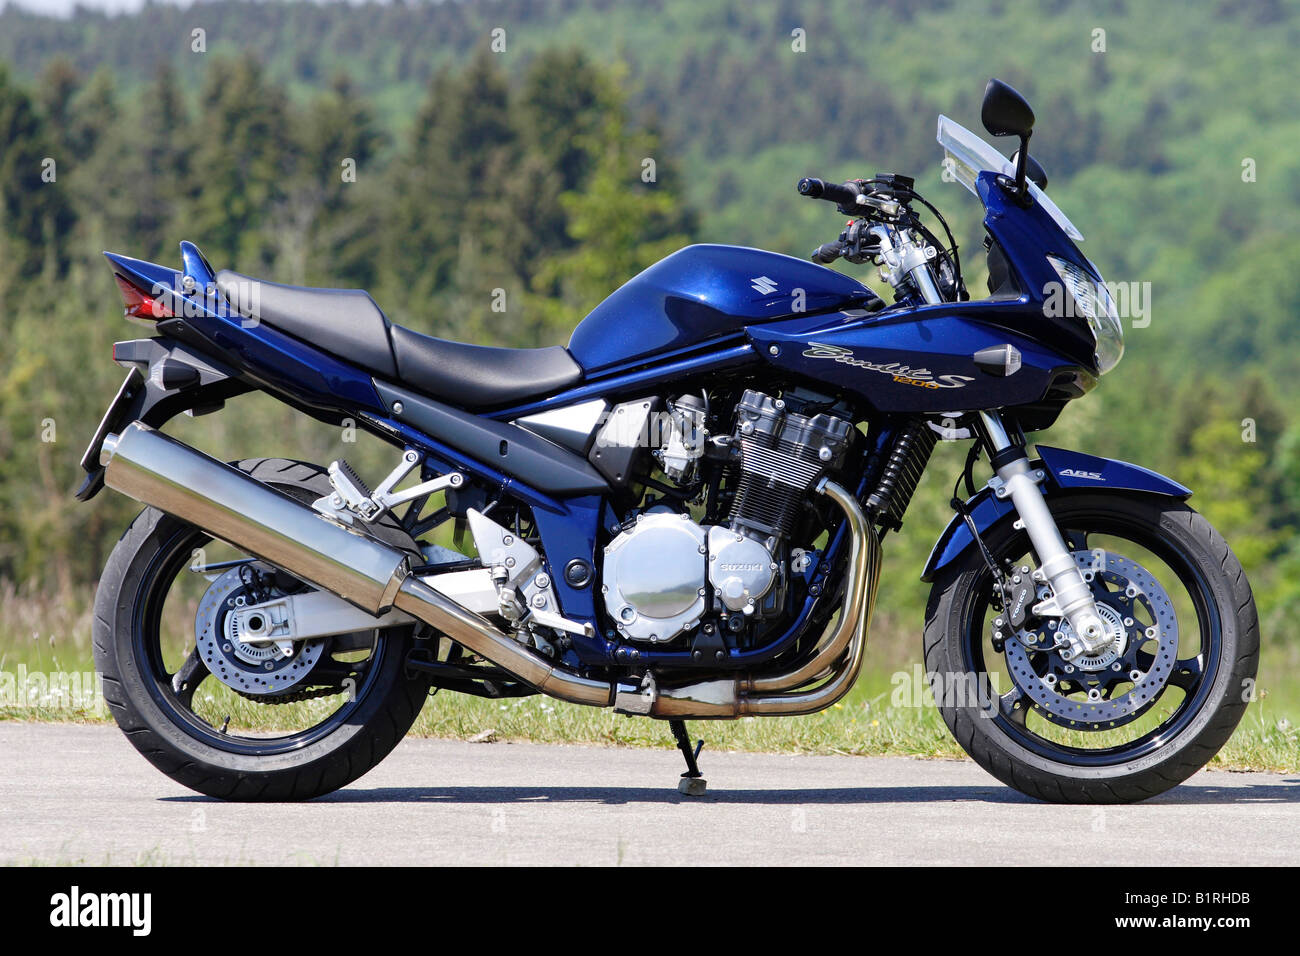 motorbike suzuki bandit 1200s stock photo royalty free. Black Bedroom Furniture Sets. Home Design Ideas